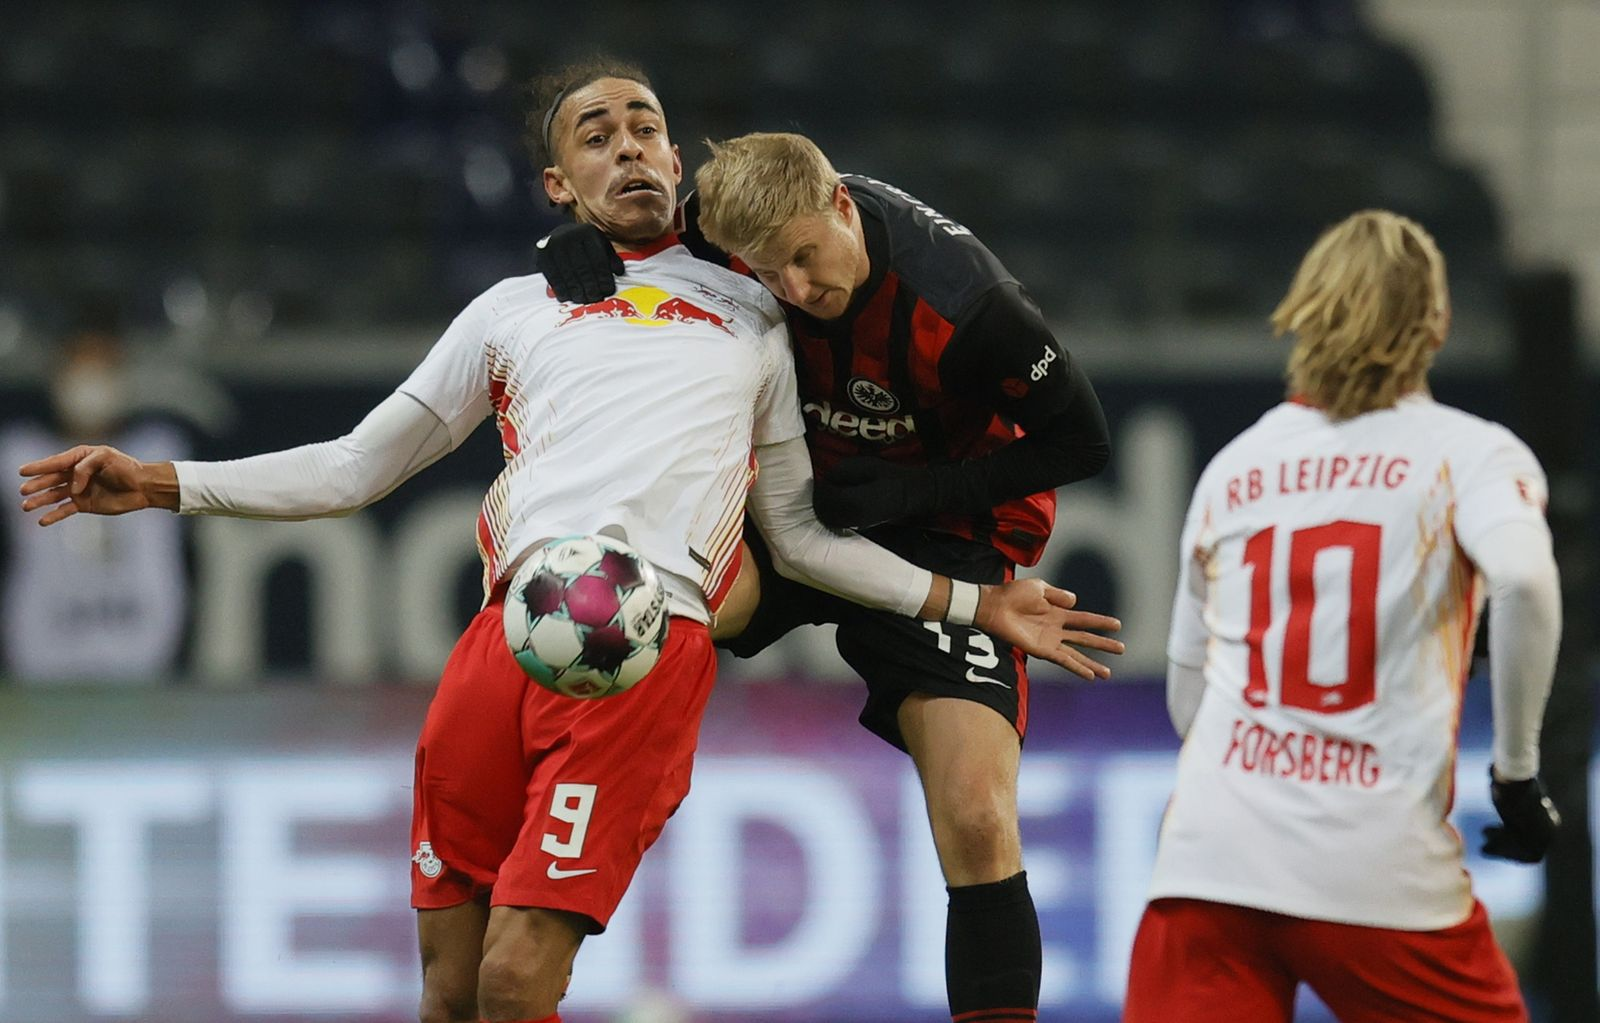 Eintracht Frankfurt vs RB Leipzig, Frankfurt Main, Germany - 21 Nov 2020